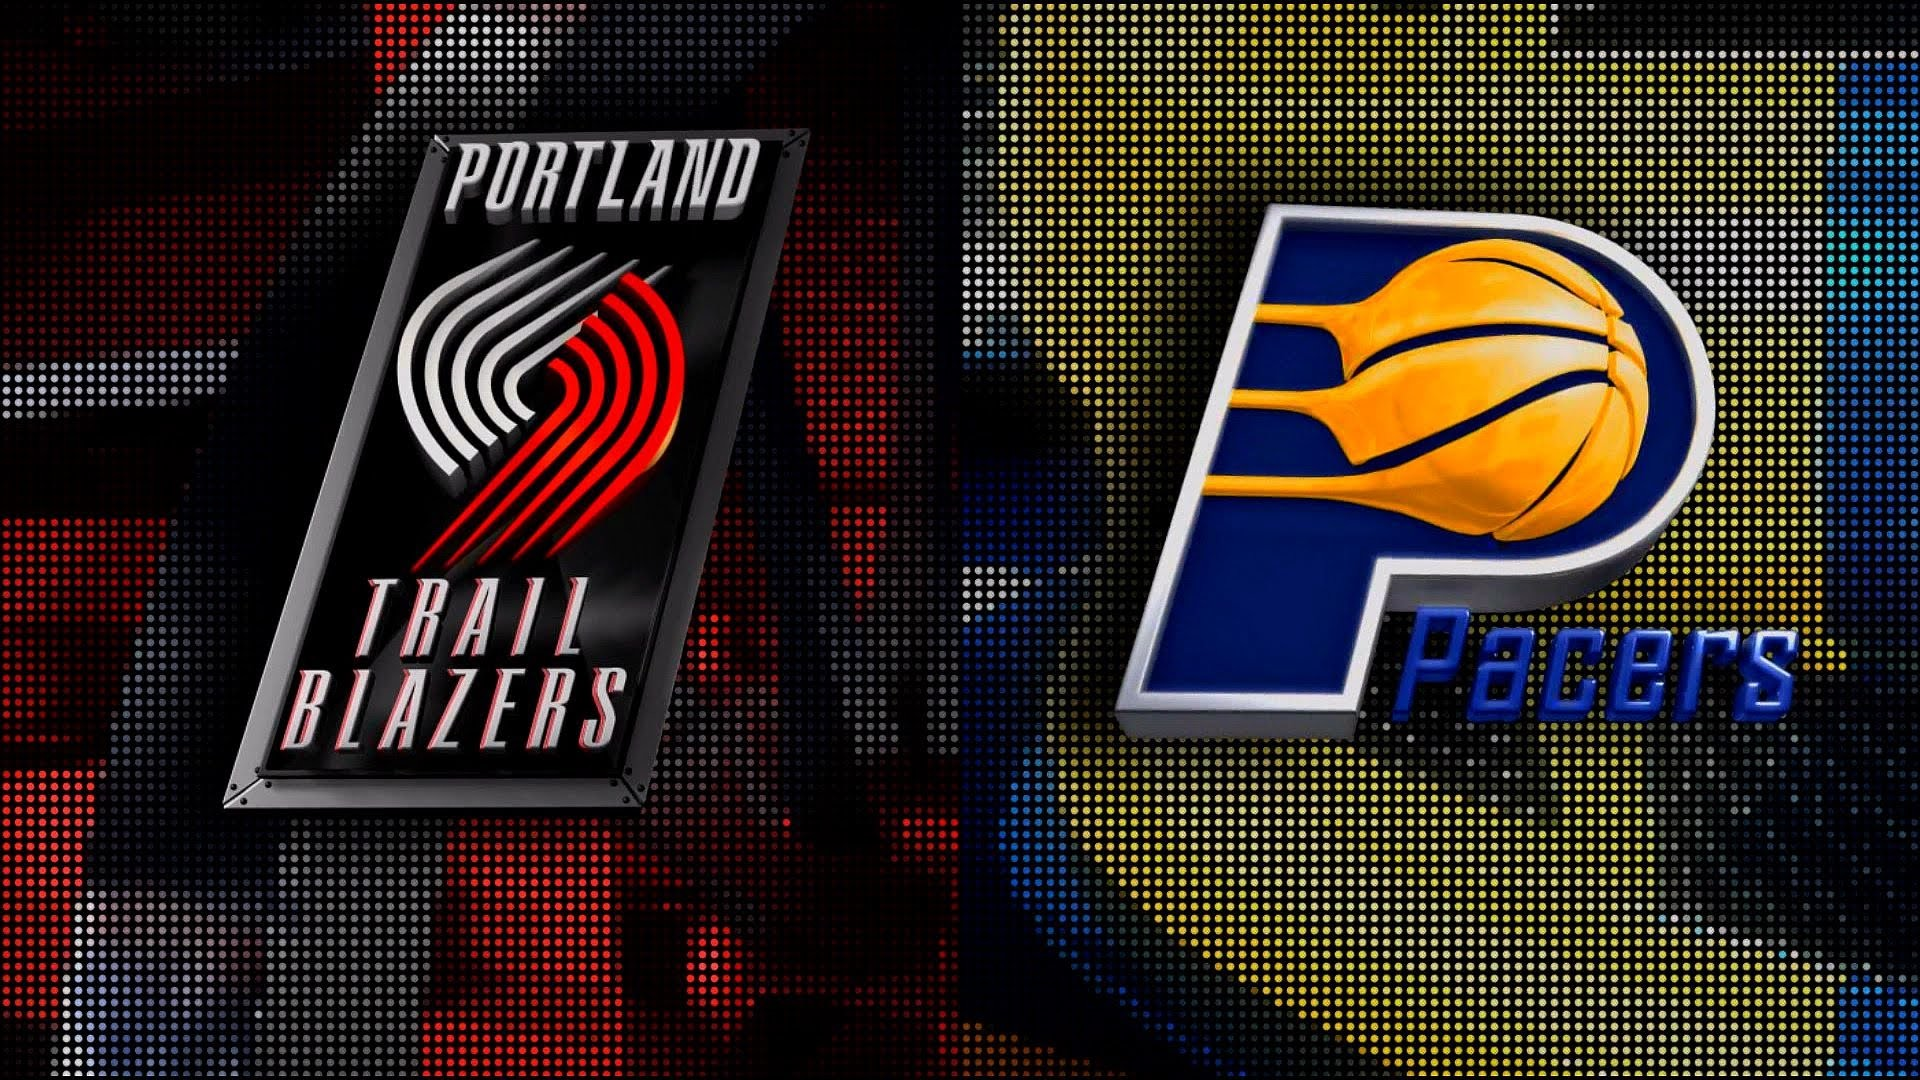 PS4: NBA 2K16 – Portland Trail Blazers vs. Indiana Pacers [1080p 60 FPS]